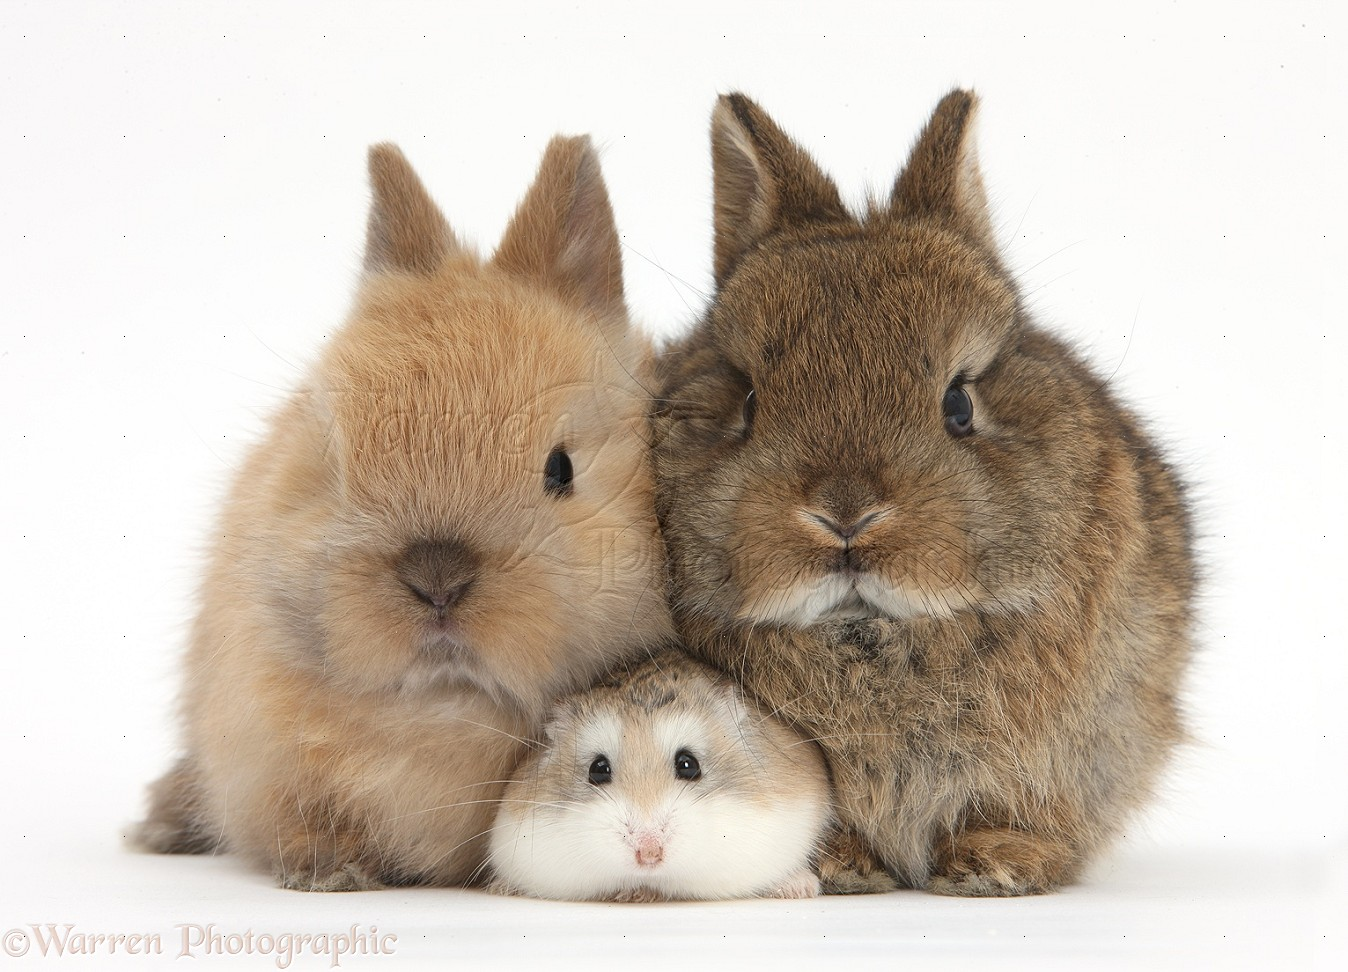 Roborovski Hamster with cute baby bunnies photo WP39699 - photo#39